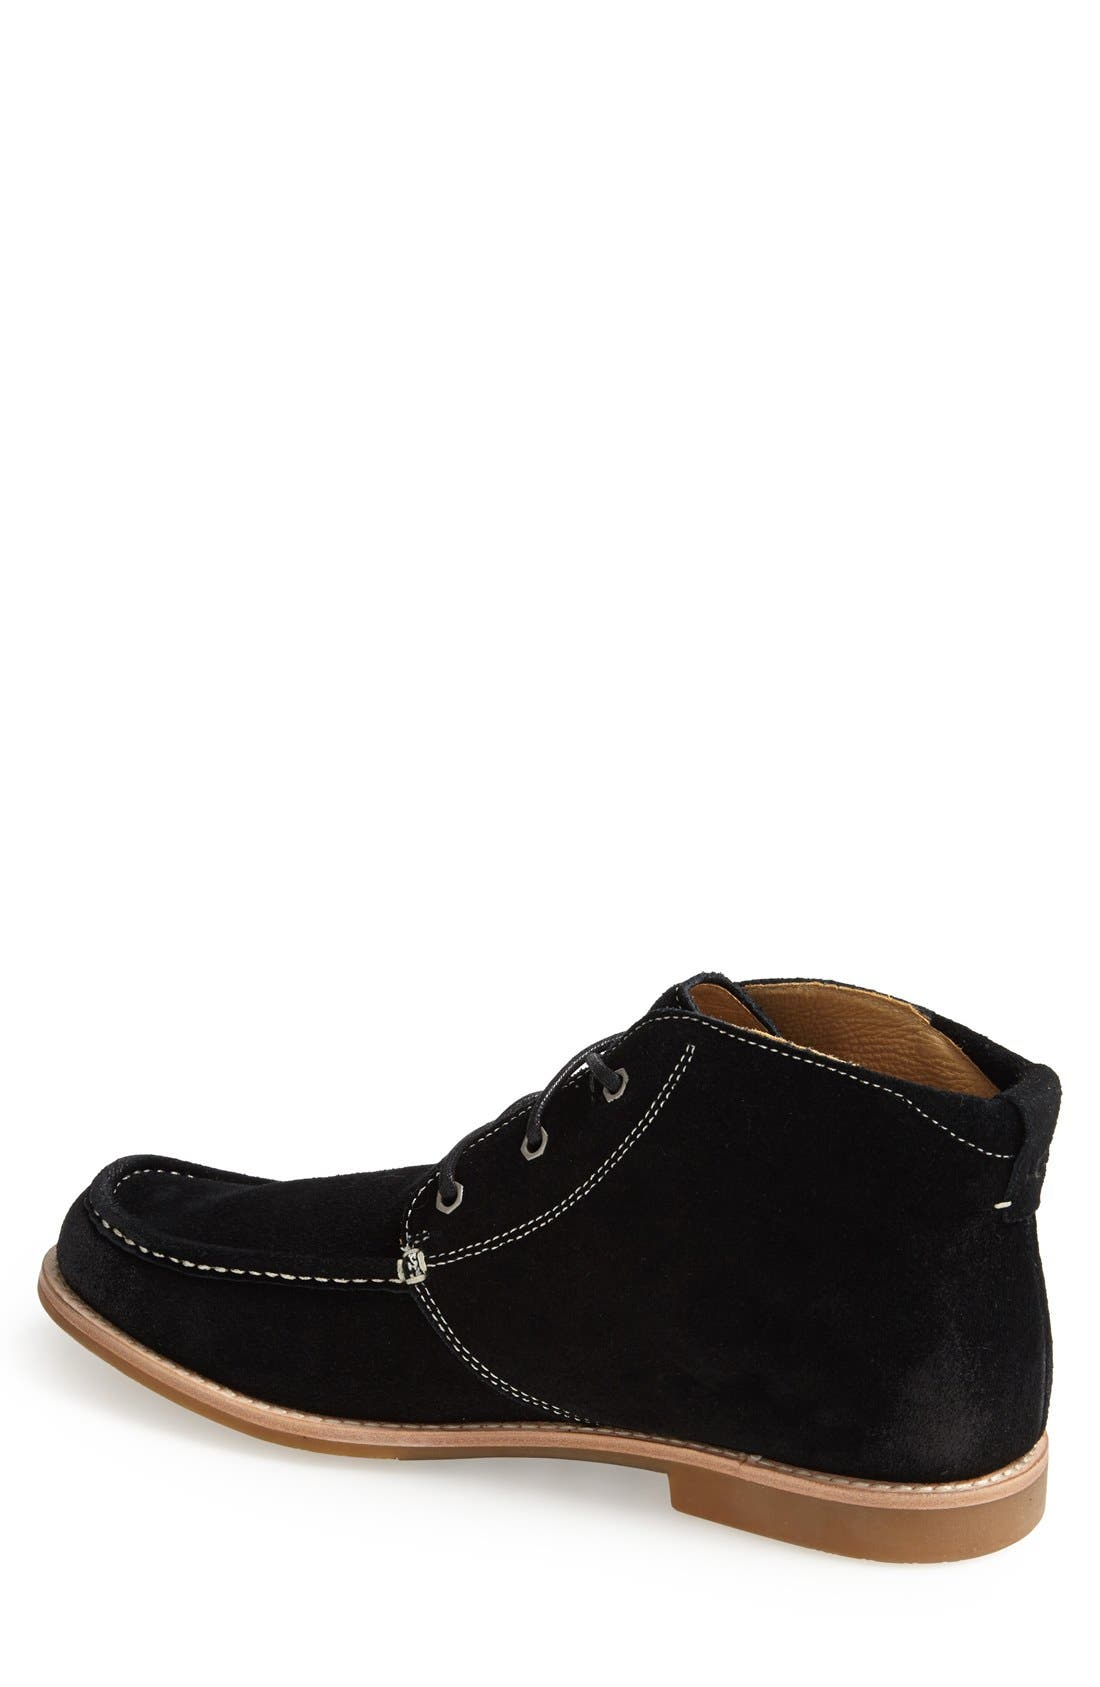 Alternate Image 2  - UGG® 'Via Lungarno' Chukka Boot